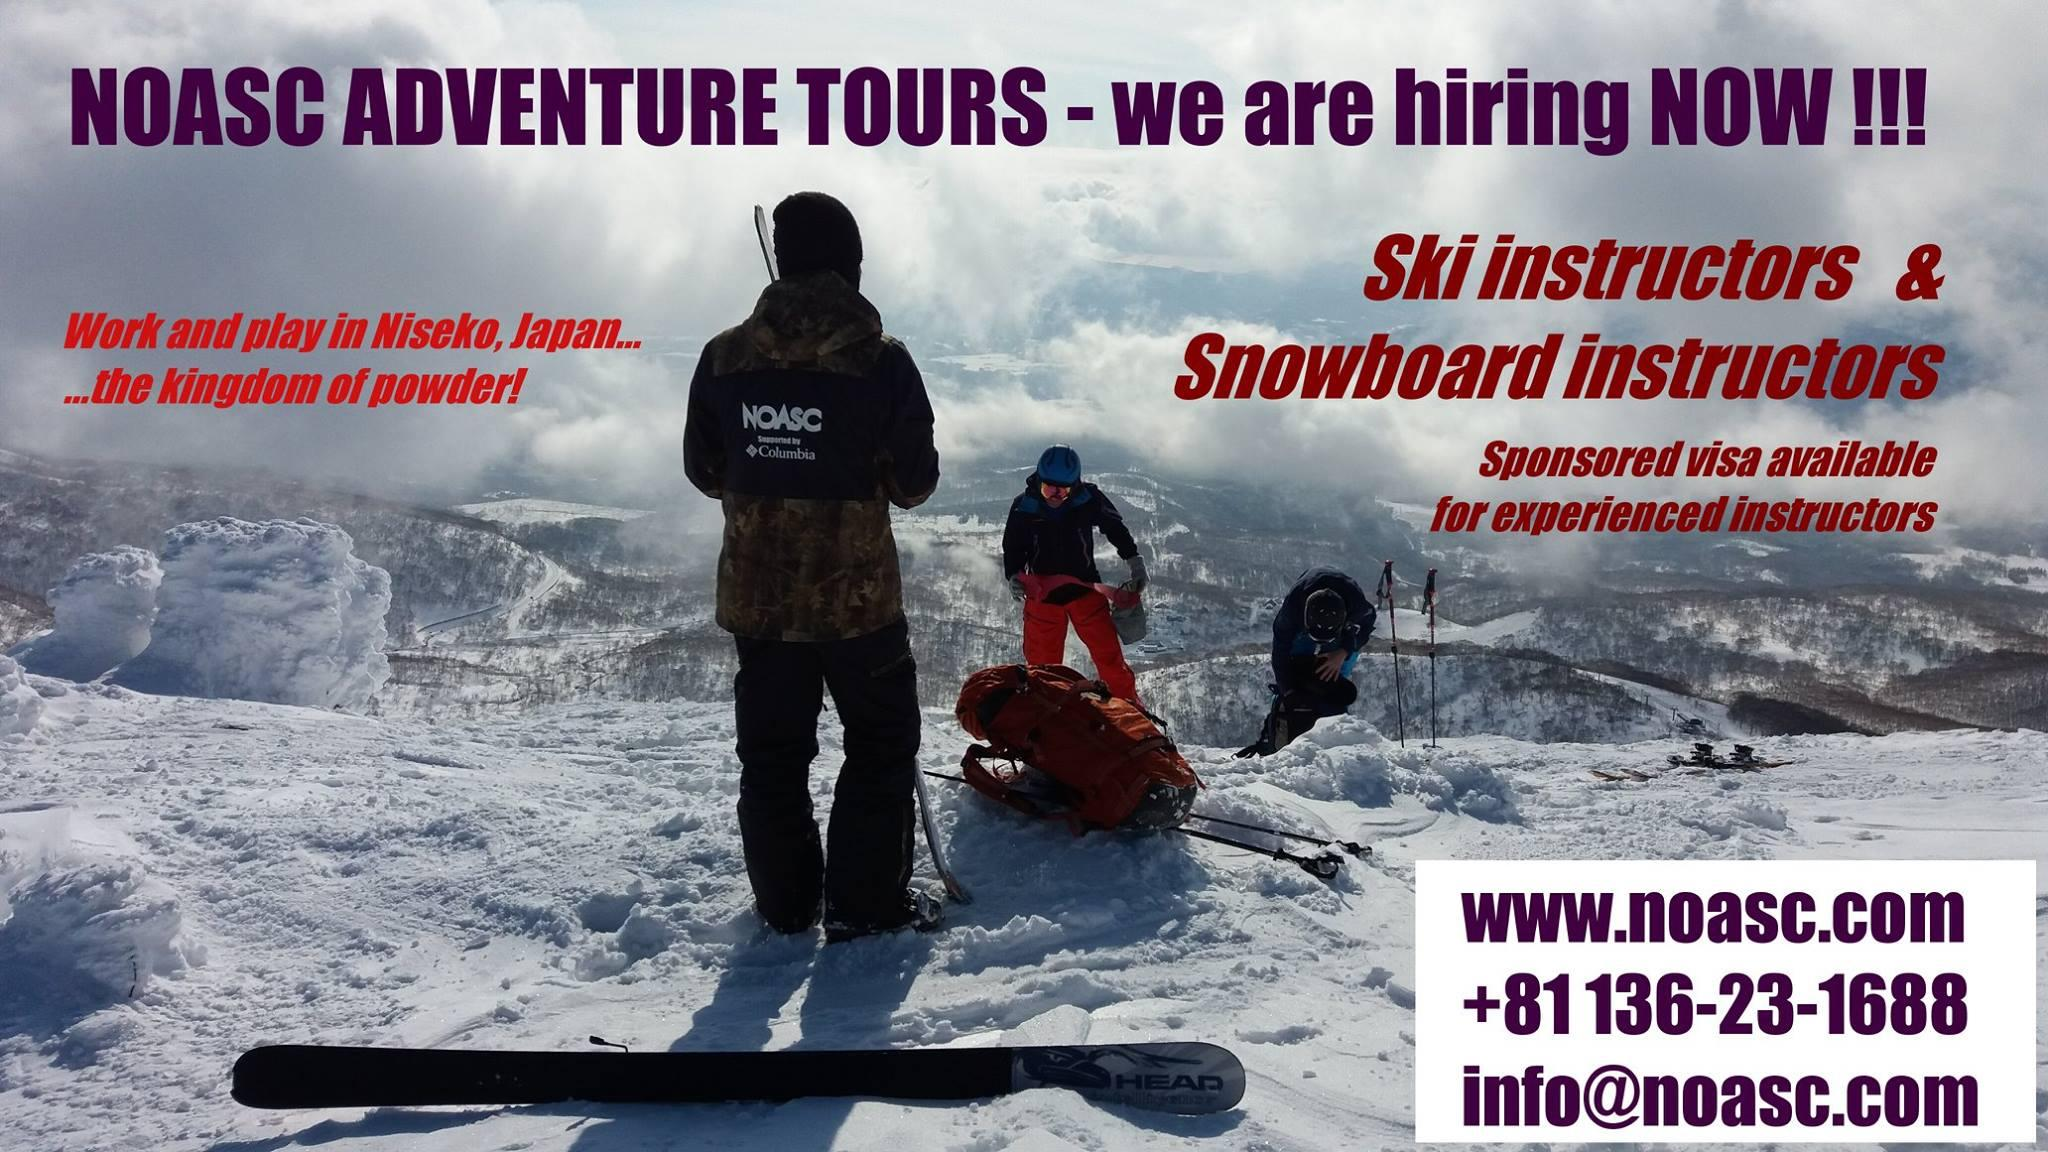 ... And Submit Your Online Application At  Http://noasc.com/en/otheractivitiestours/other/noasc Employment/item/412 Winter  Ski Snowboarding Instructor Jobs